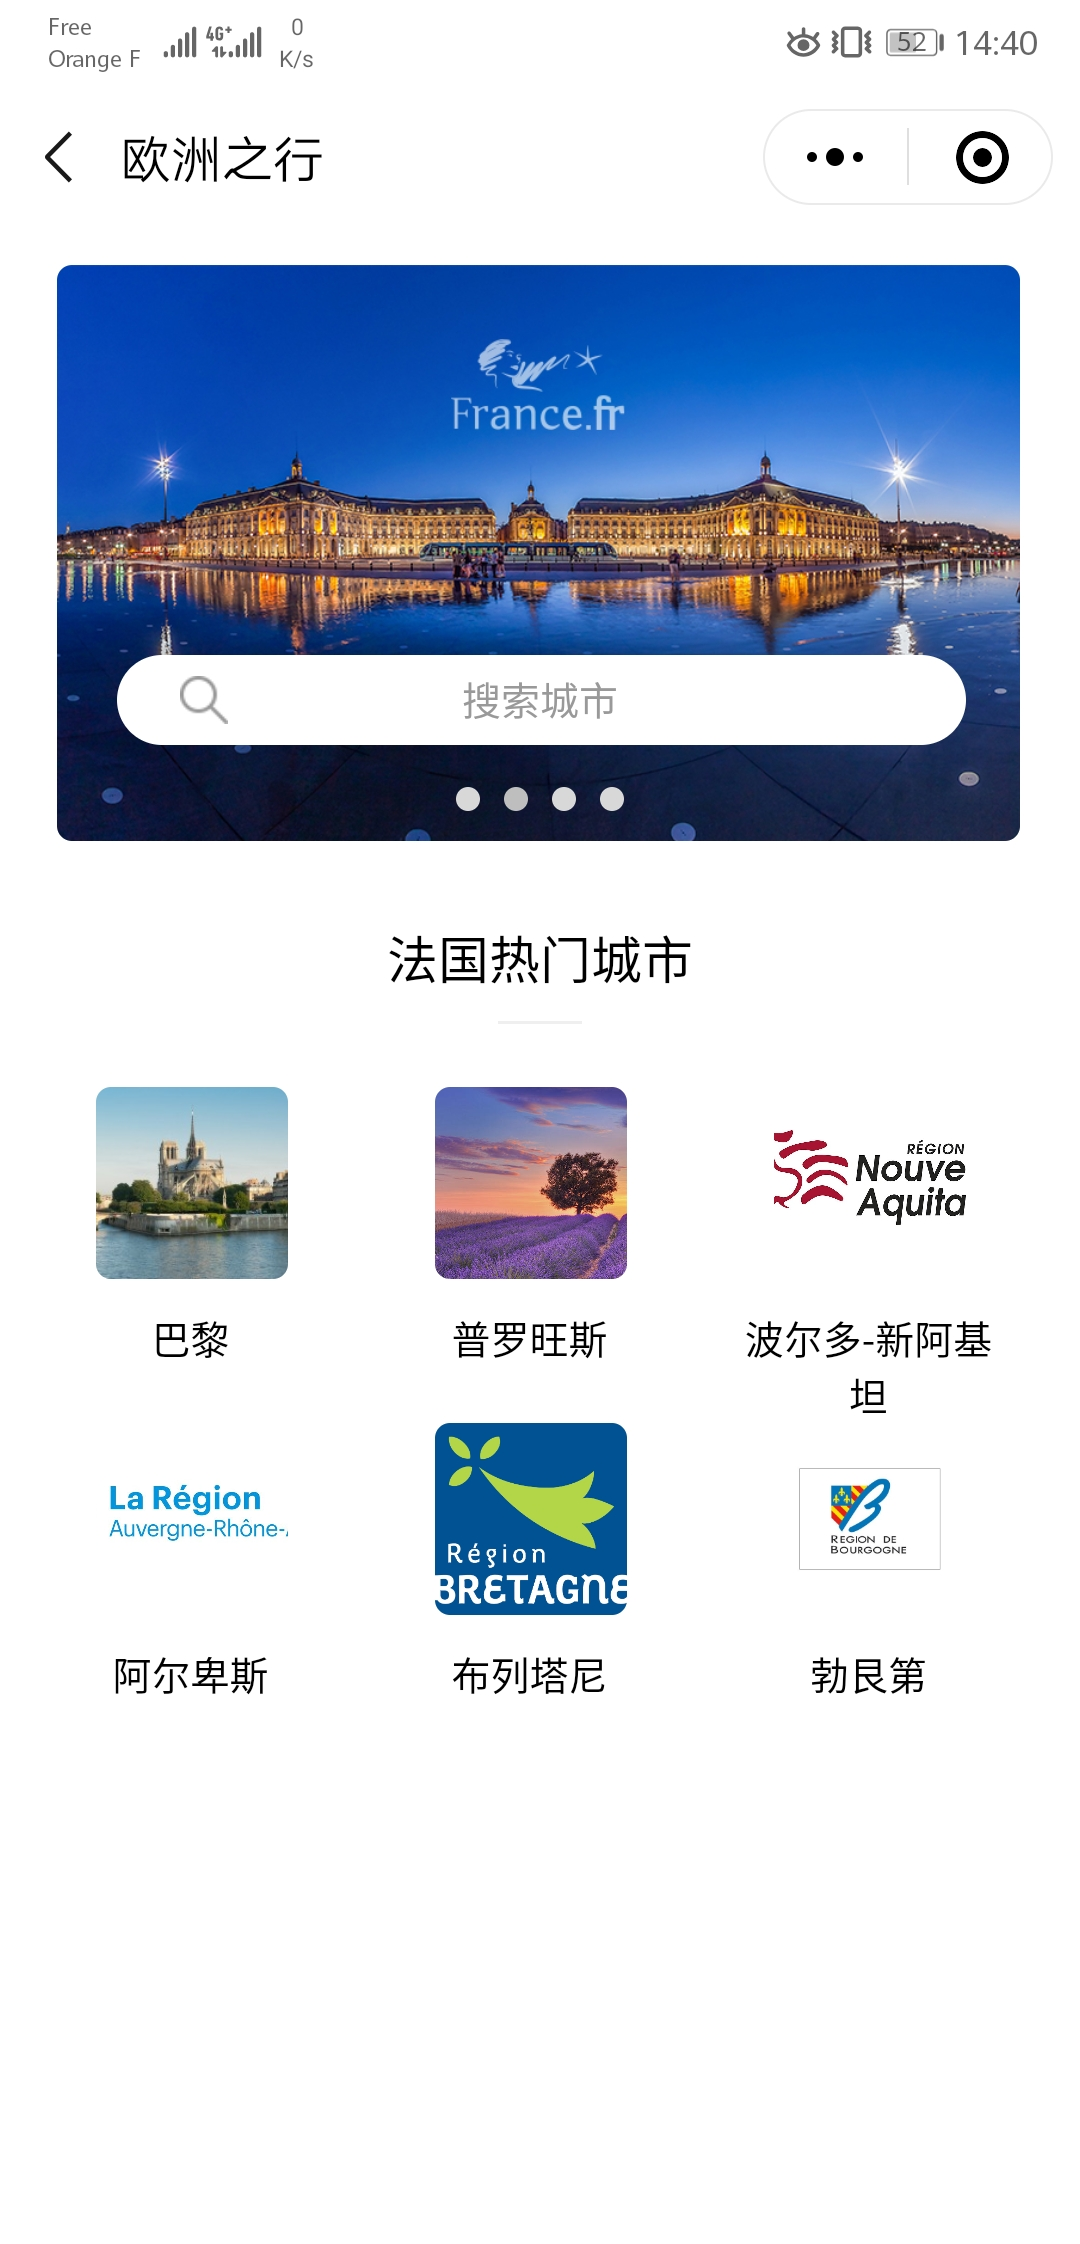 WeChat Travel Experience WeChat Mini-Program France Experience